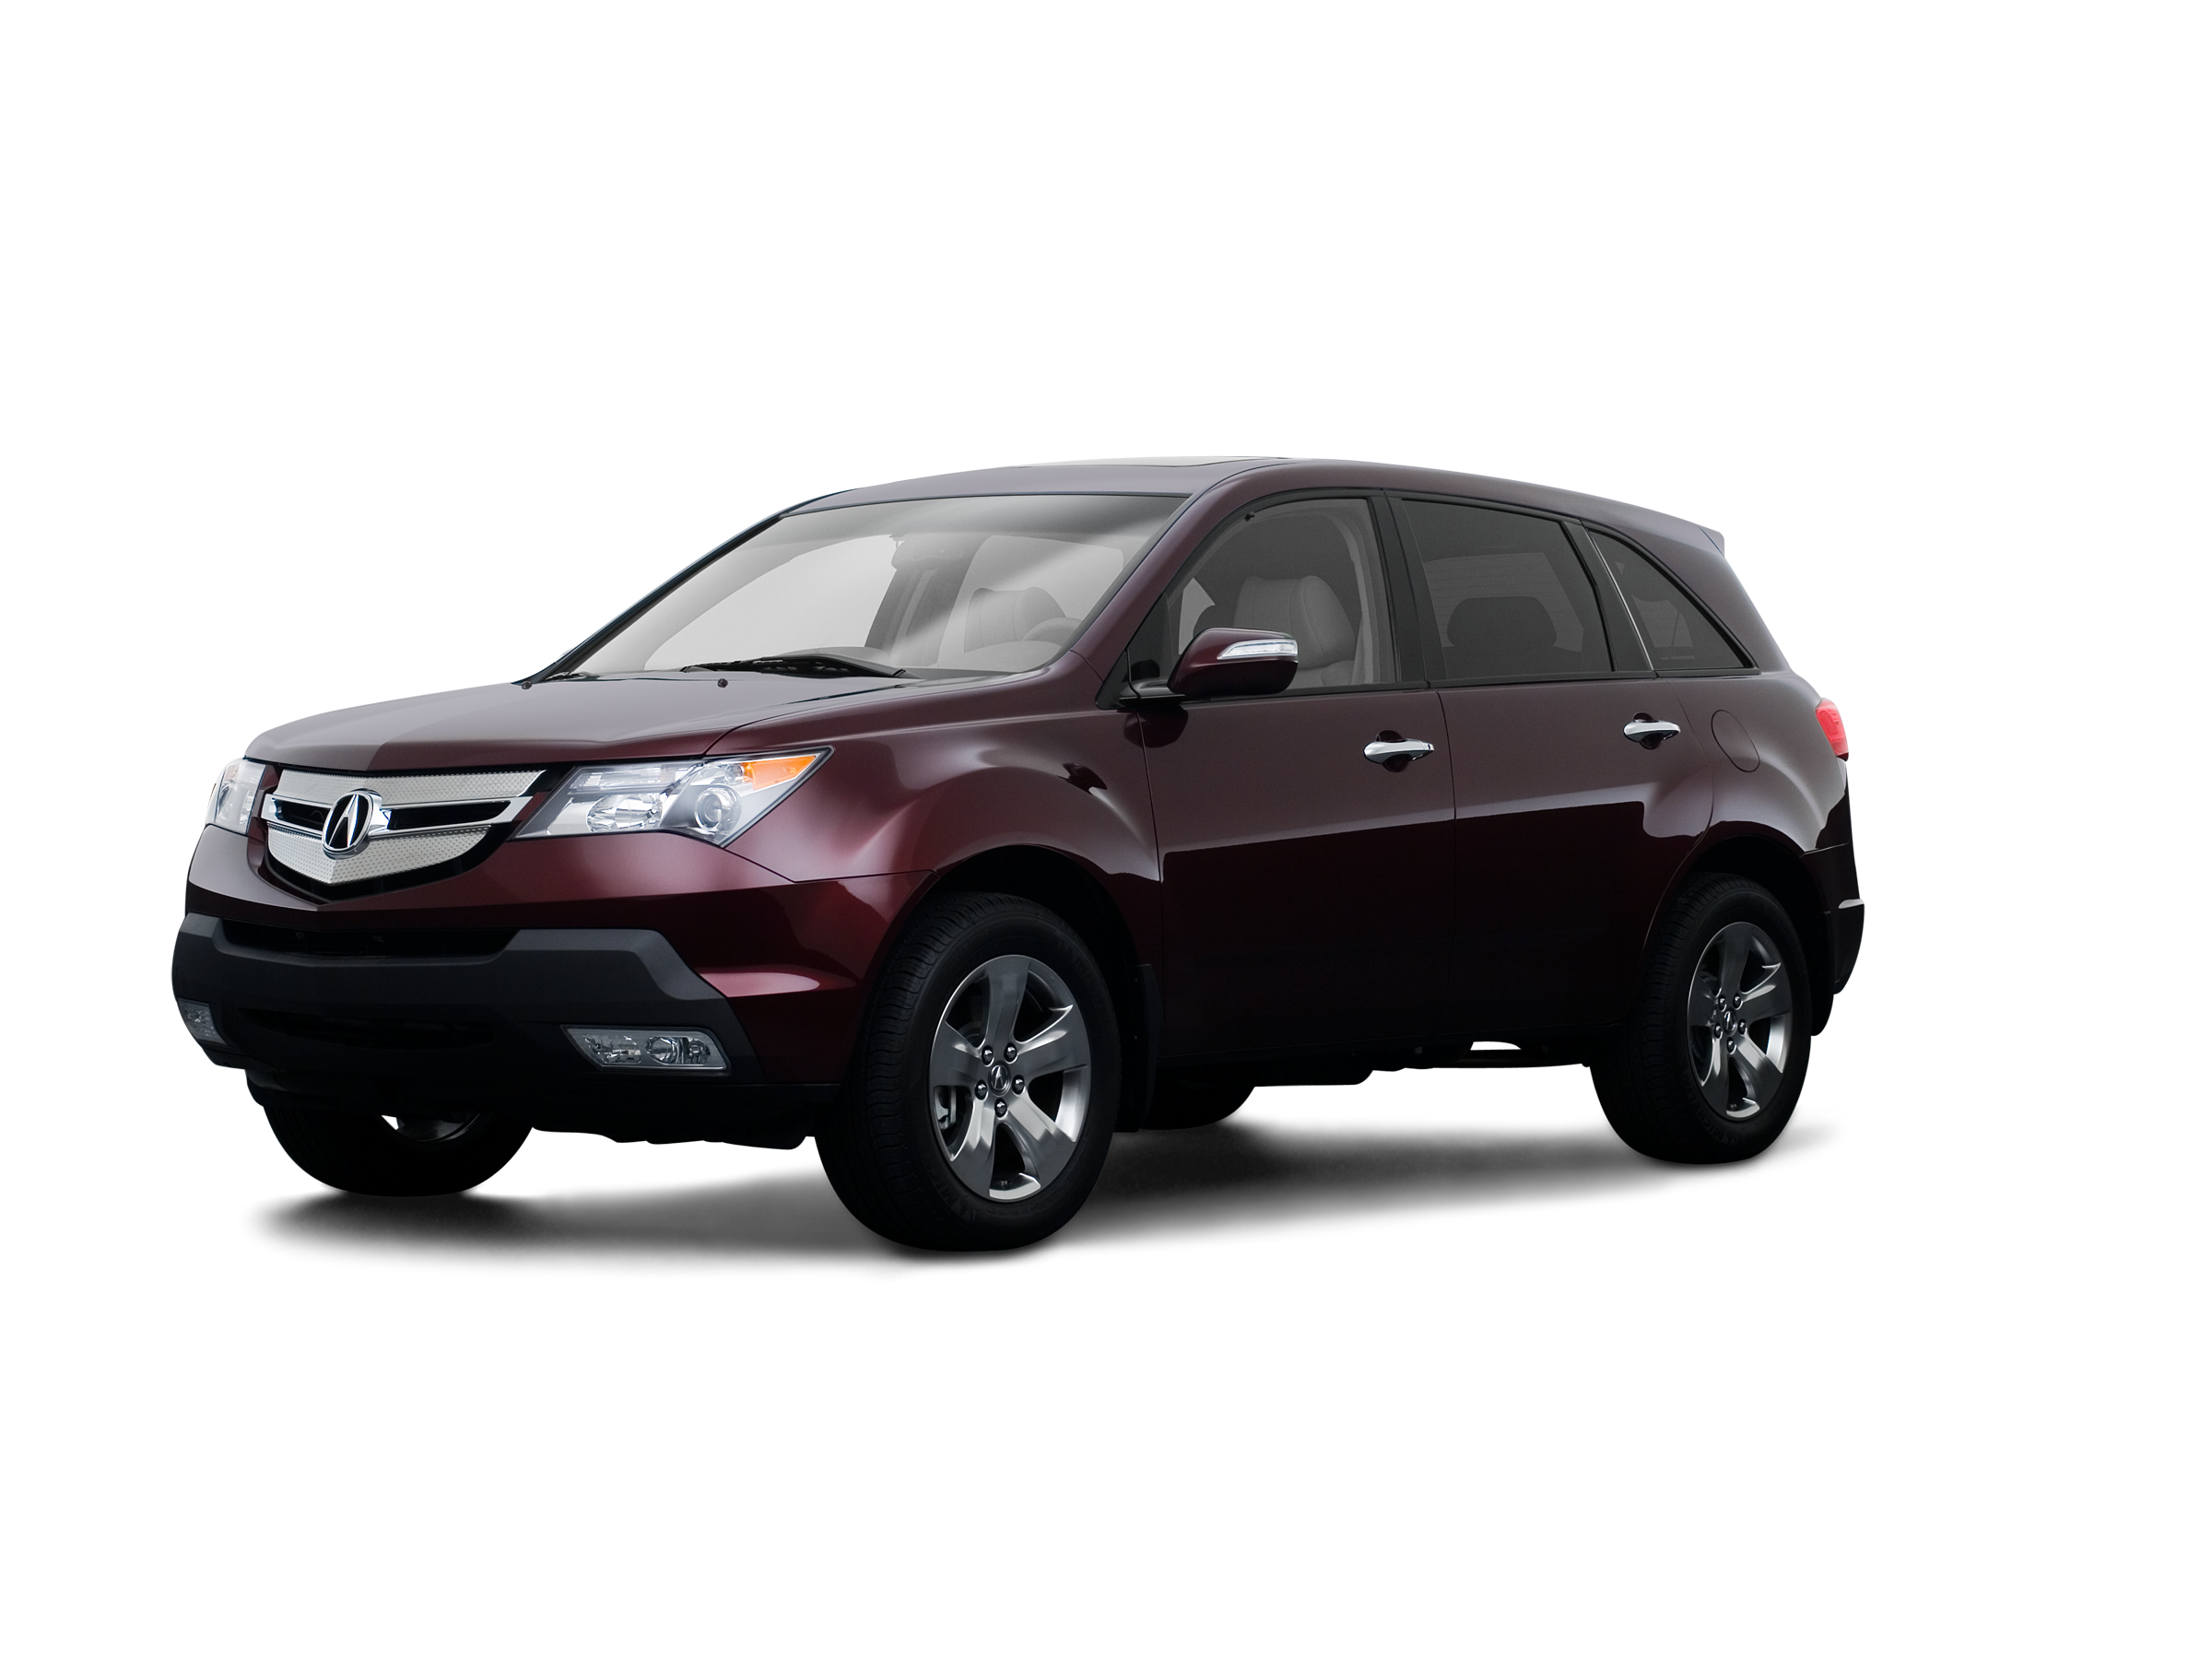 2008 Acura Mdx Values Cars For Sale Kelley Blue Book